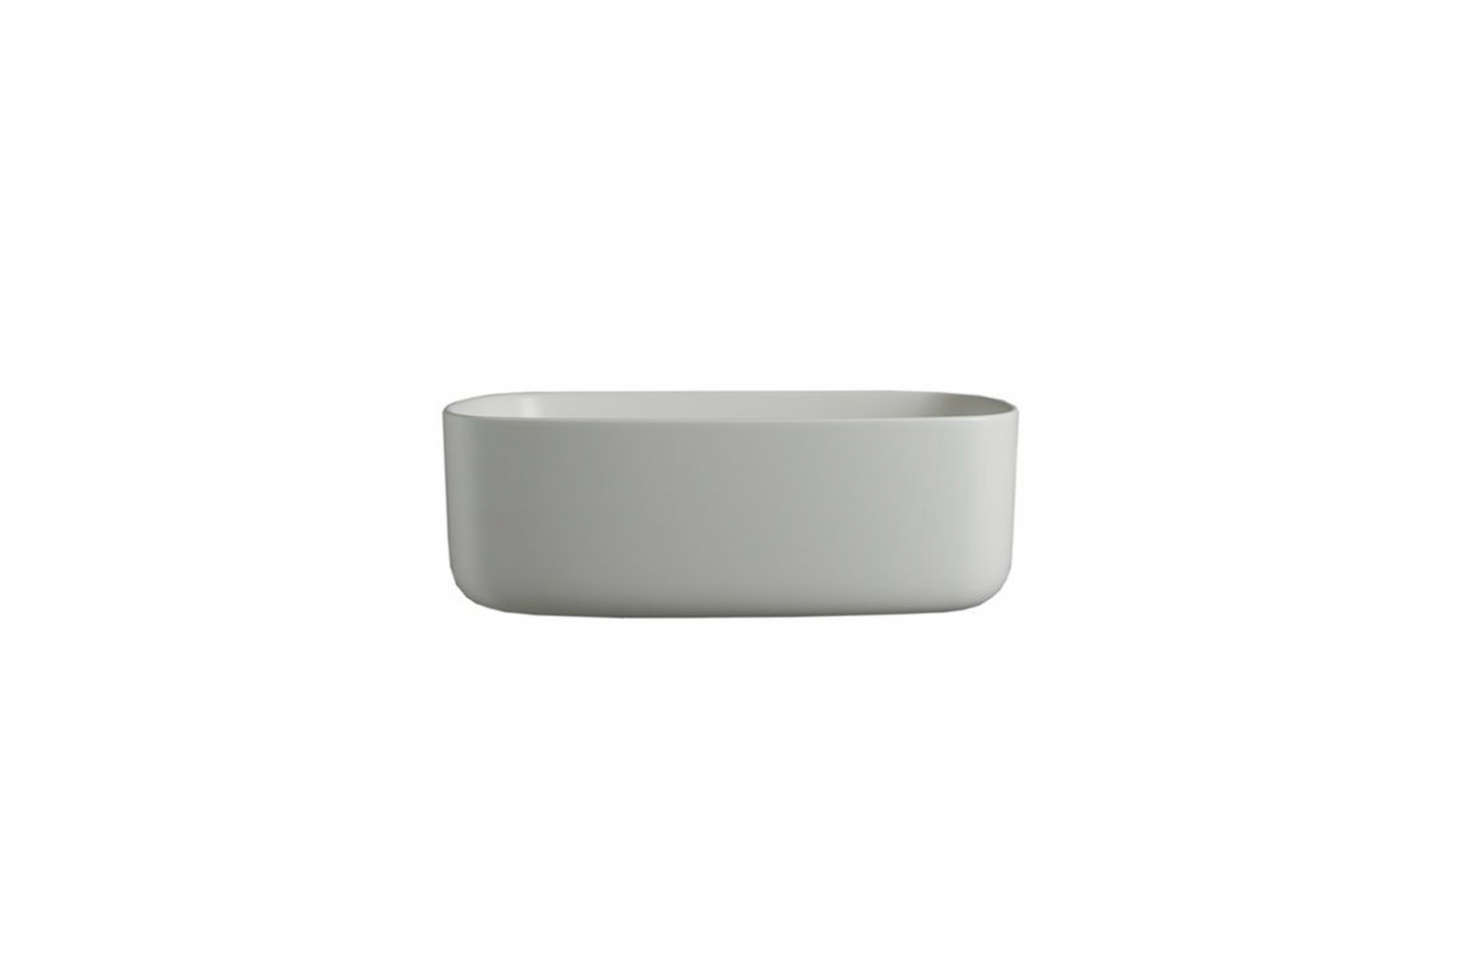 The Ever Bounce Lavabo/Sink is available at Ever Life Design in Italy.